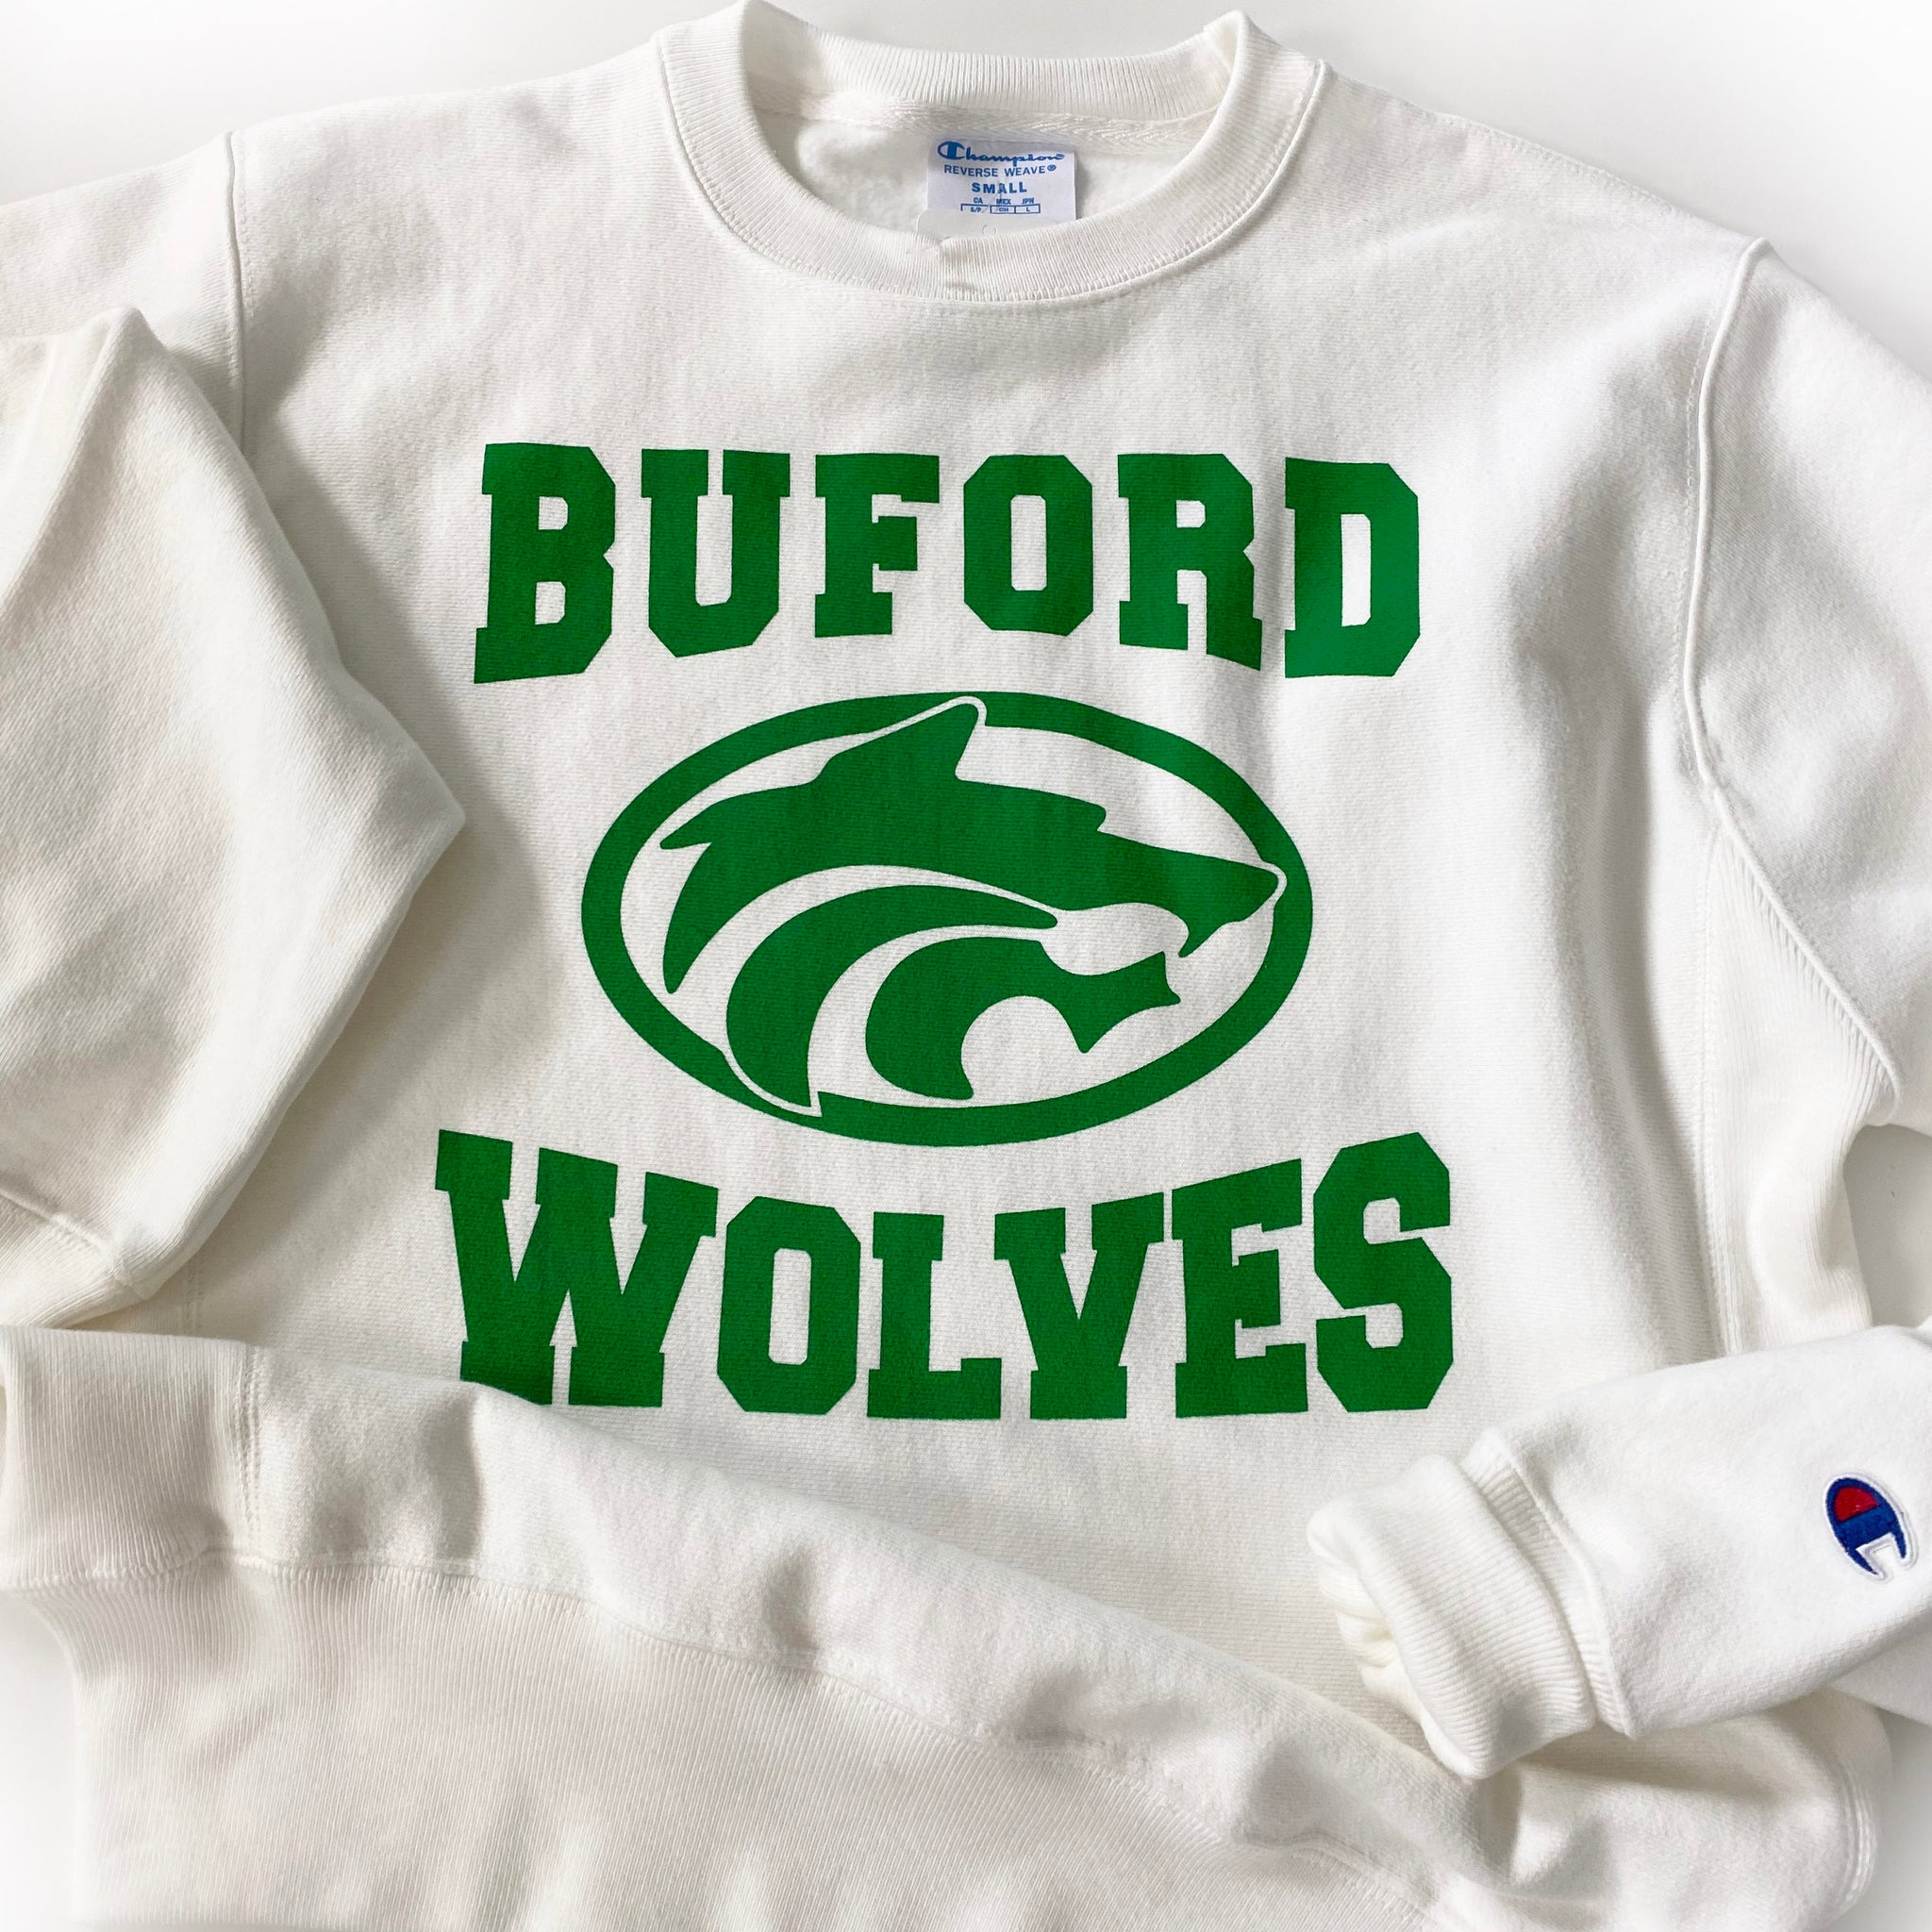 Champion Crew White Buford Wolves Sweatshirt Adult